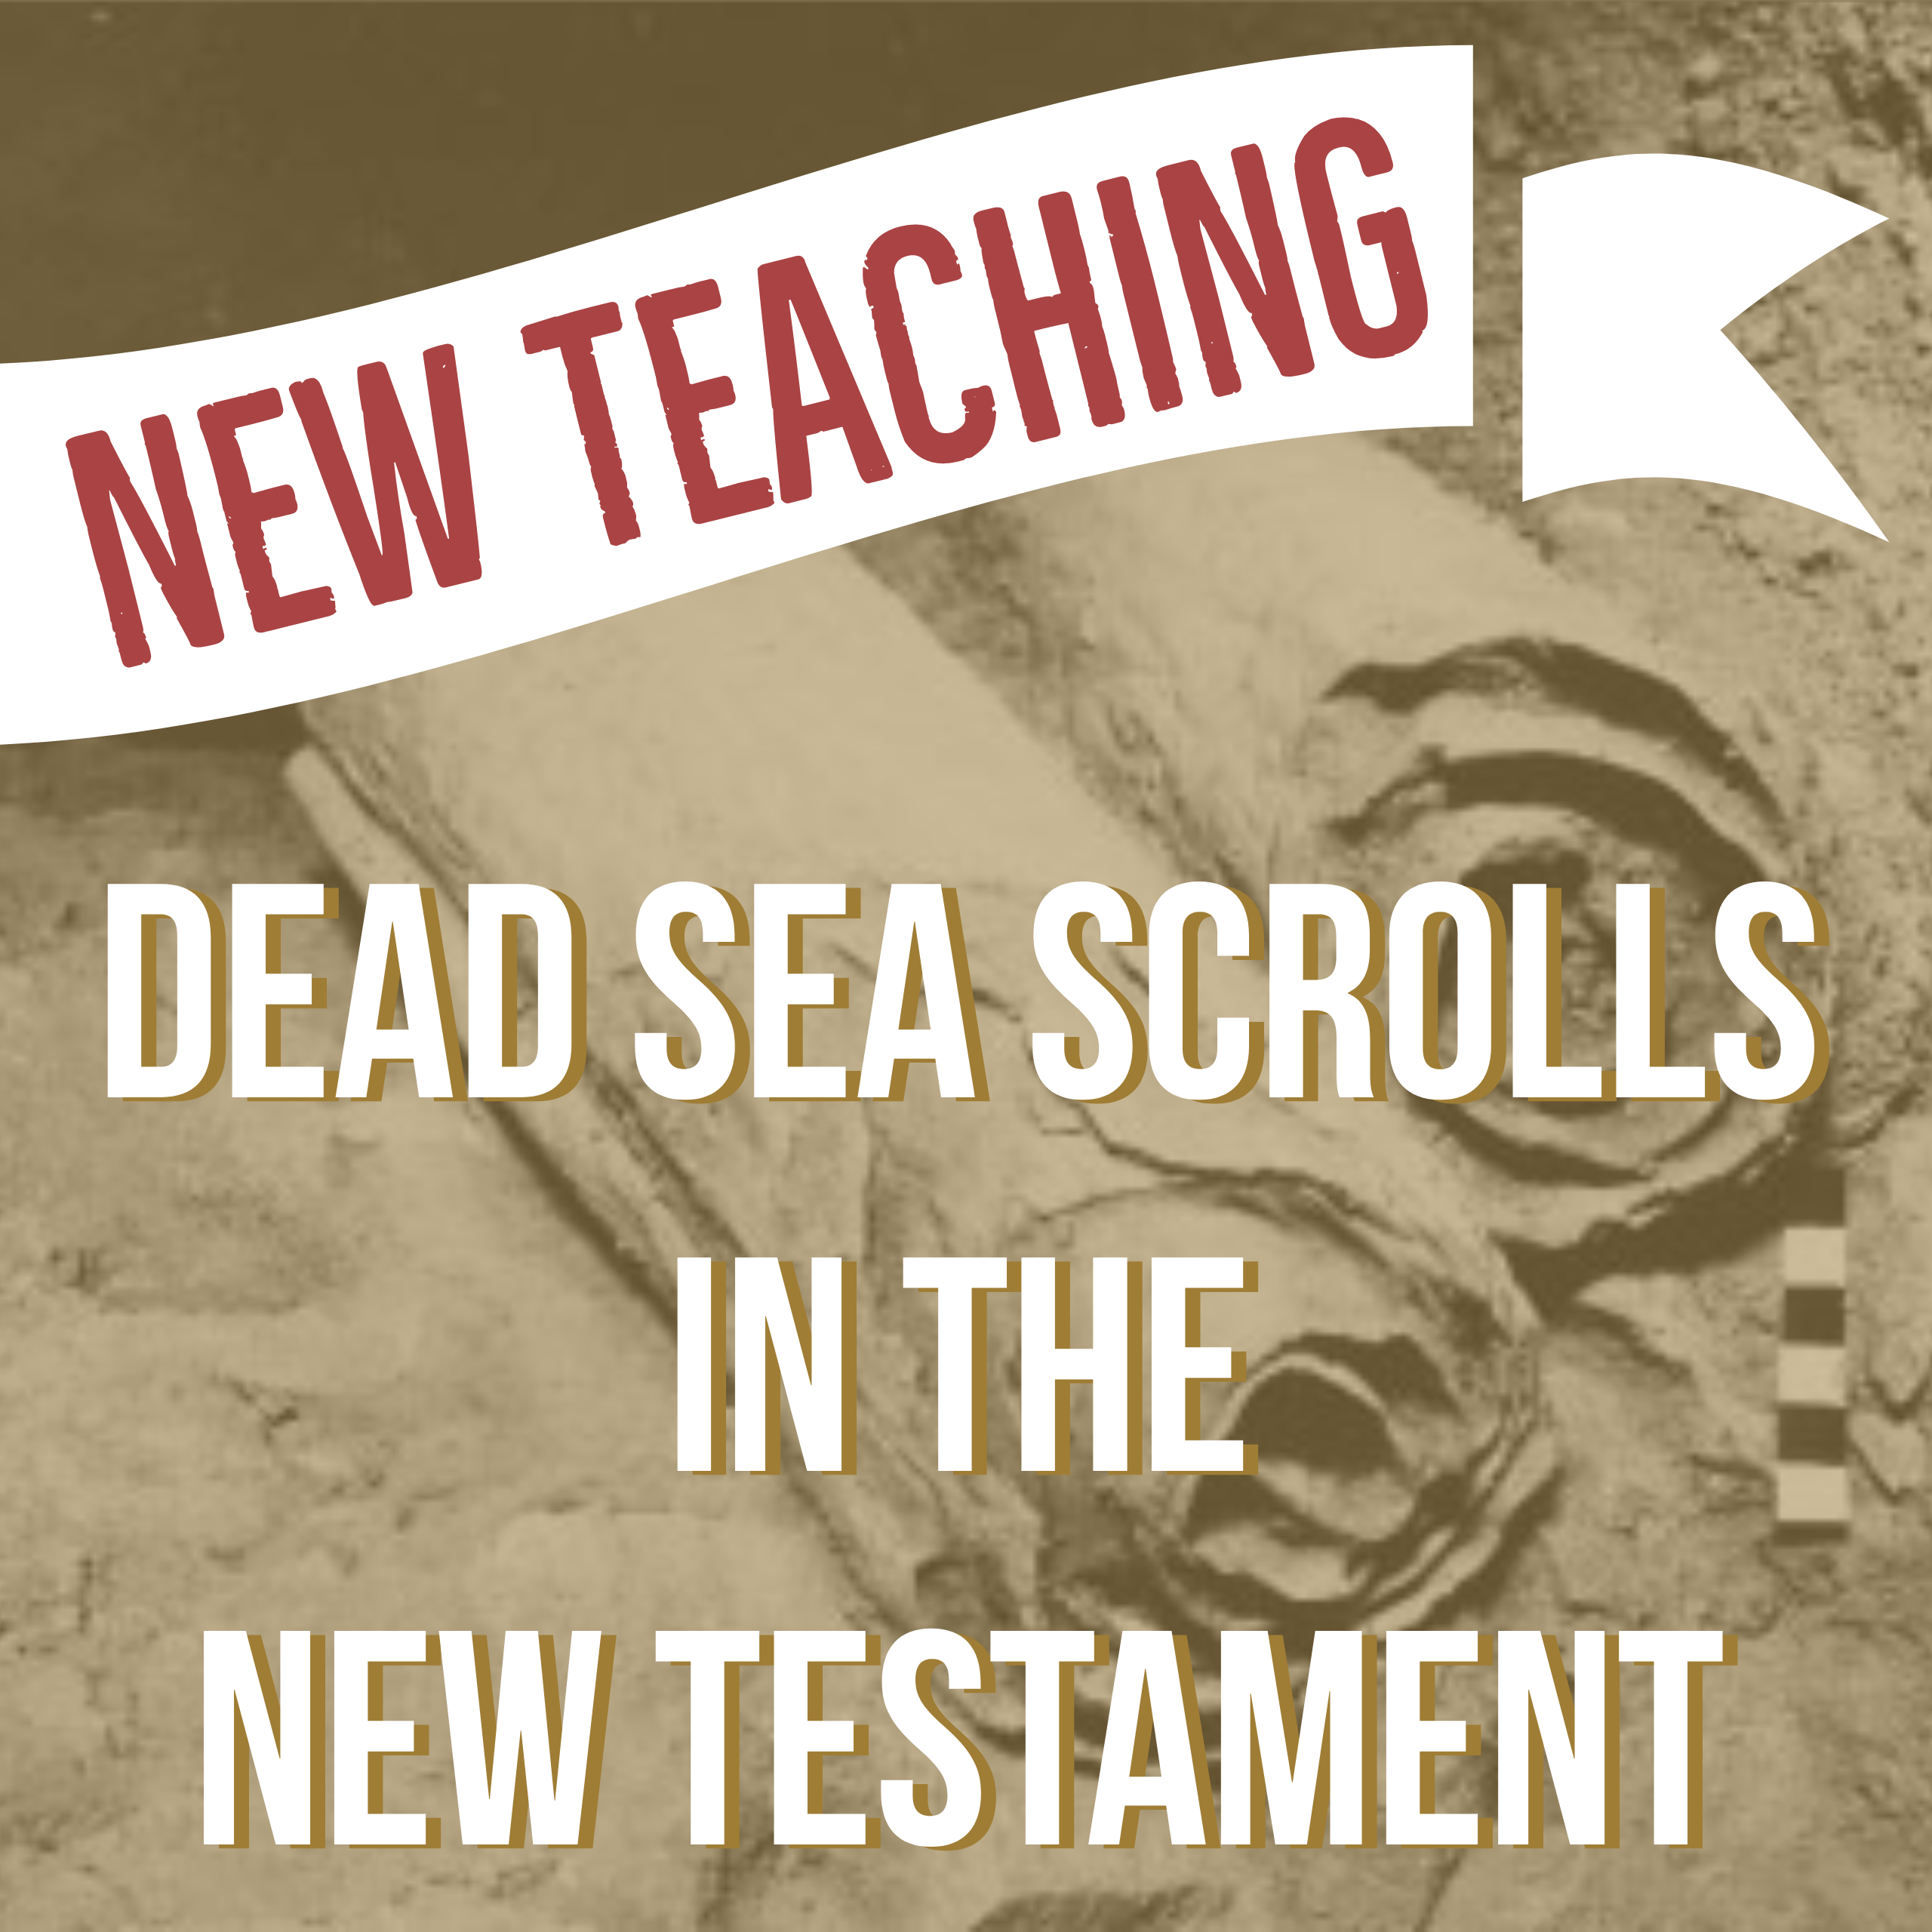 New Teaching-Dead Sea Scrolls in the New Testament